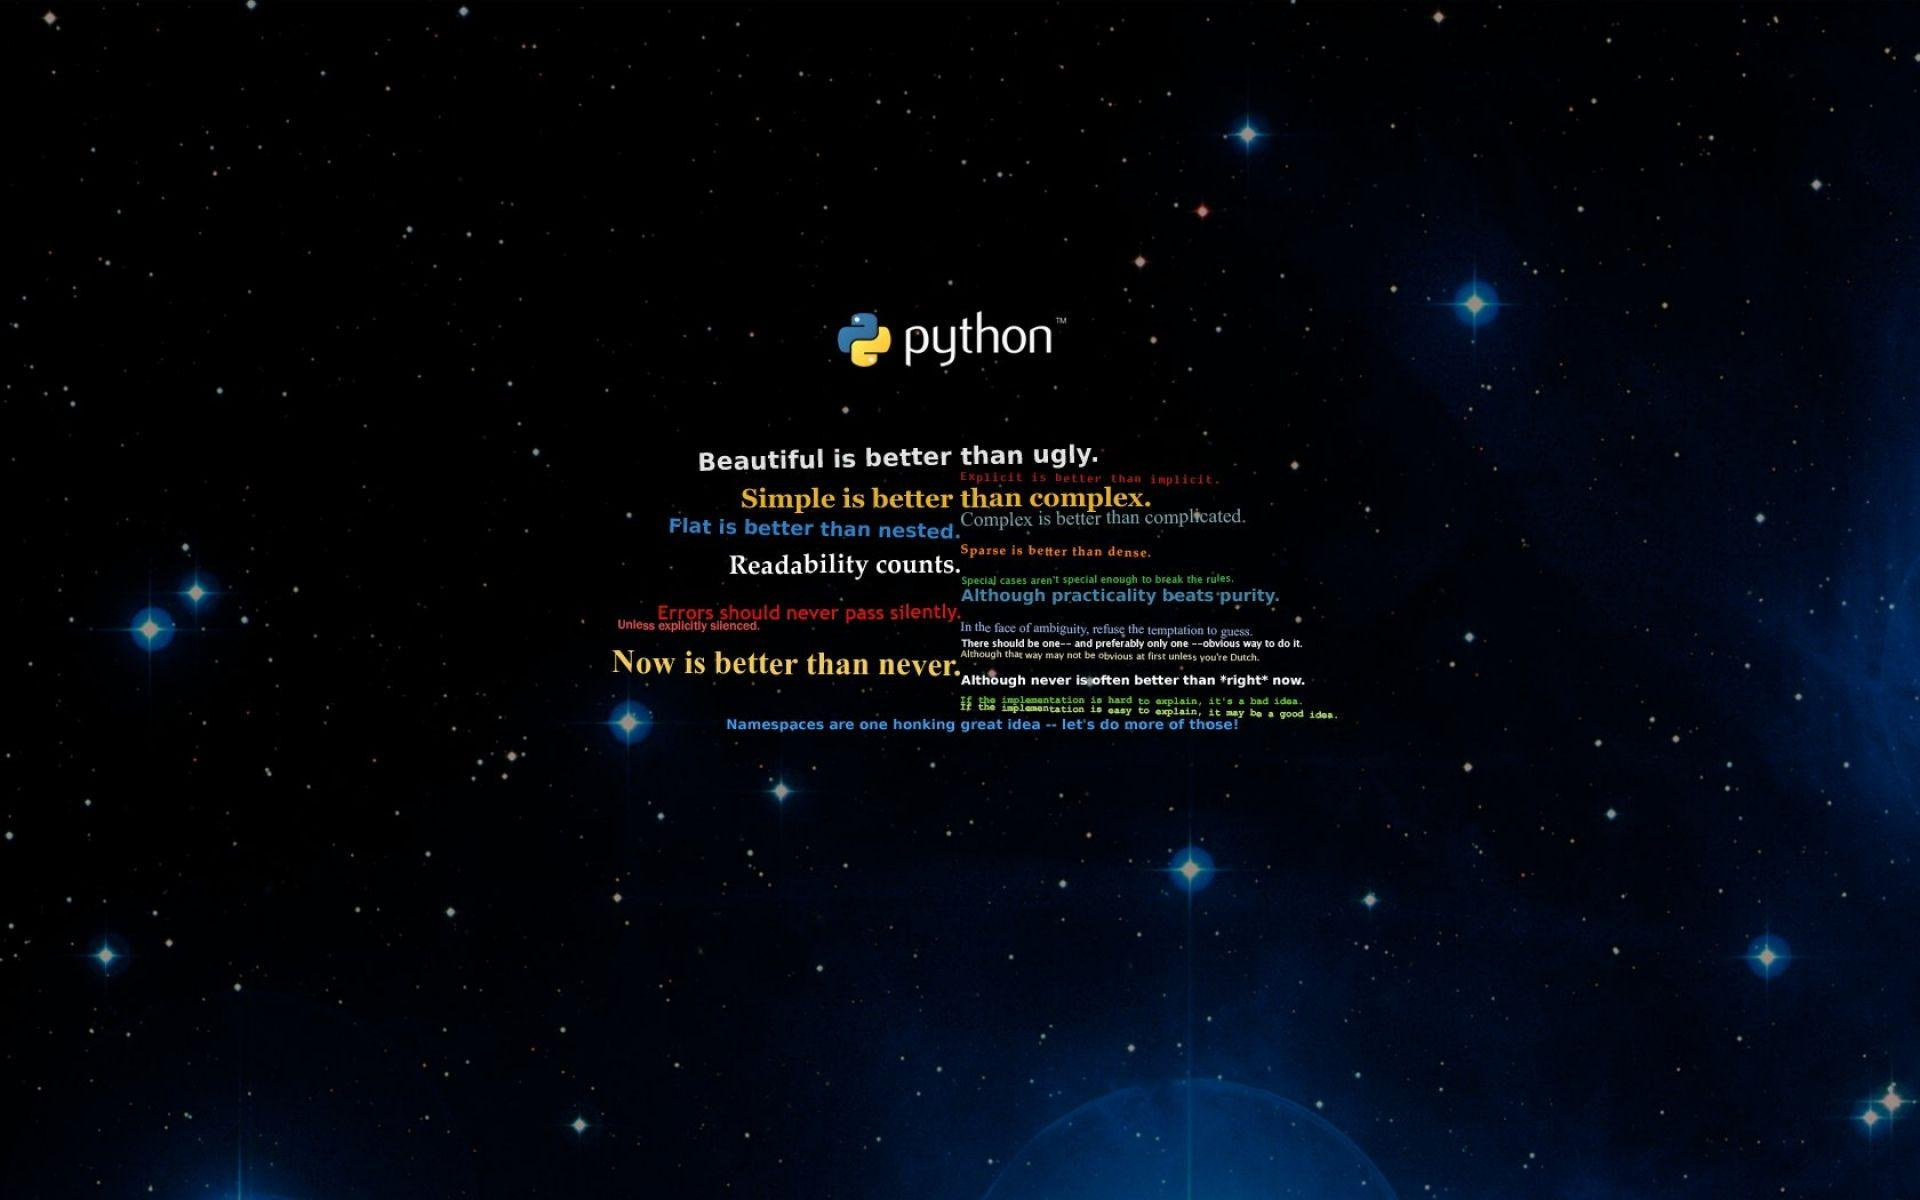 Python Wallpapers Wallpaper Cave